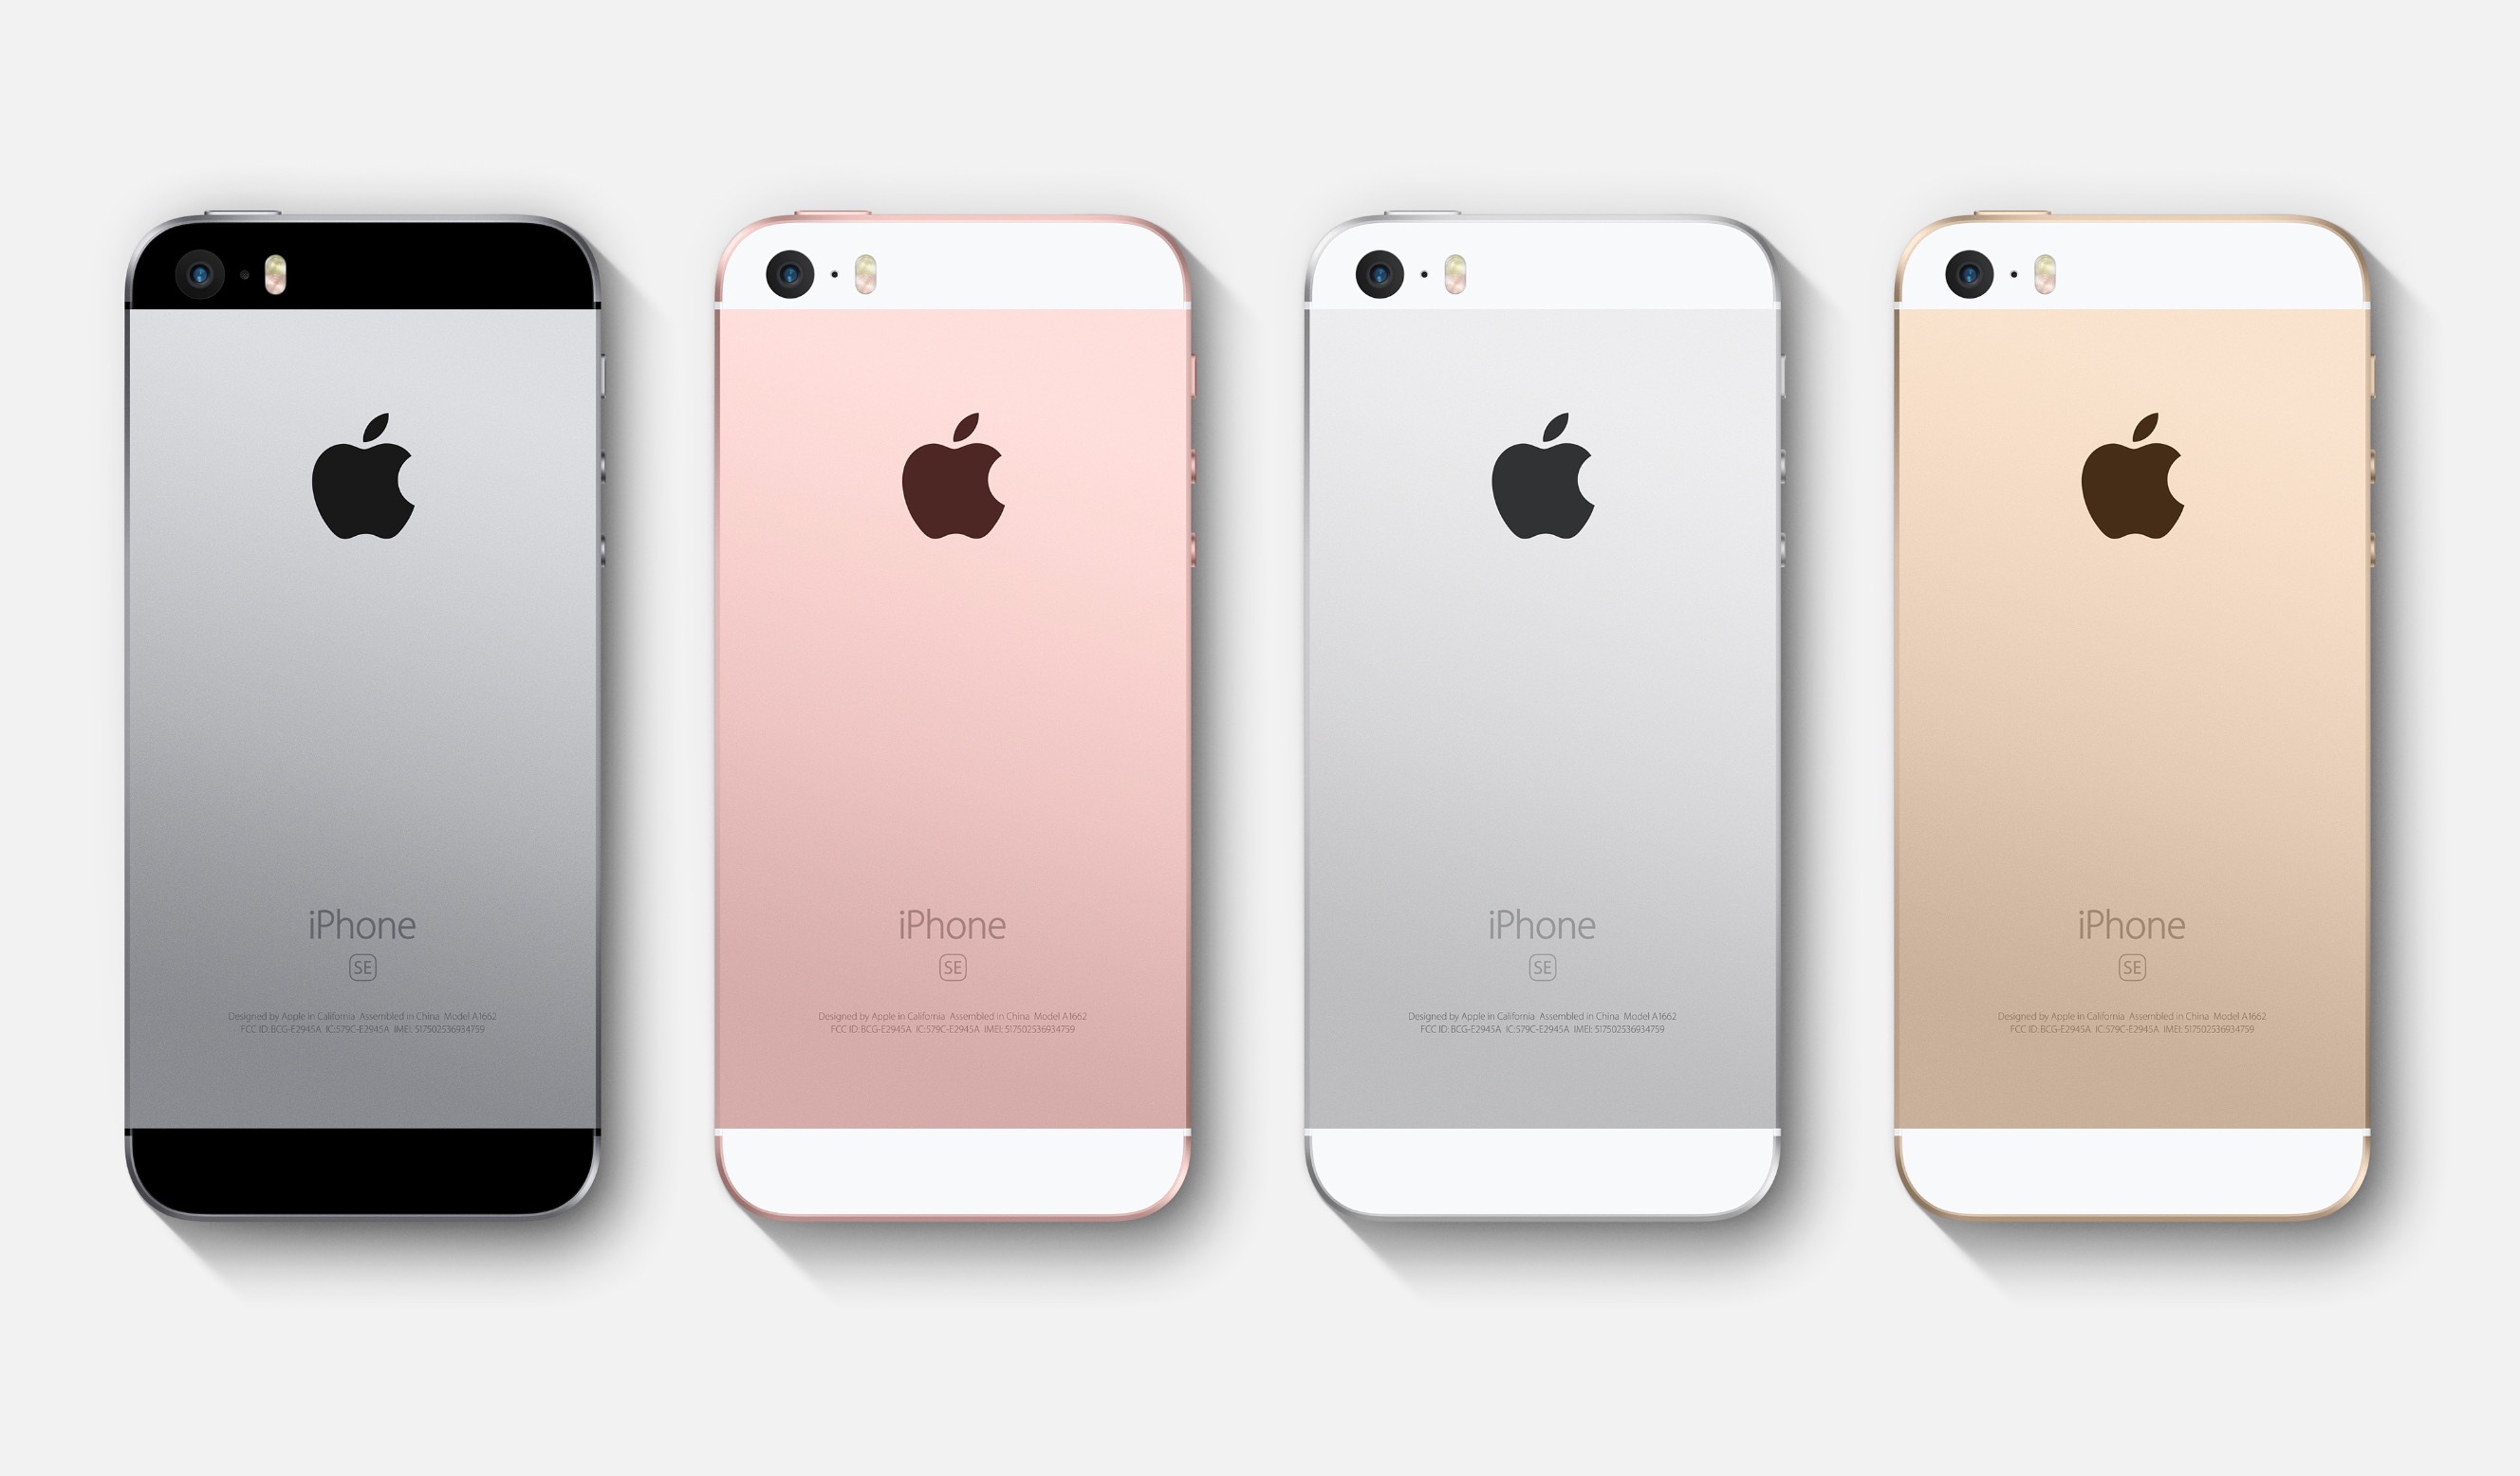 iPhone SE colori disponibili